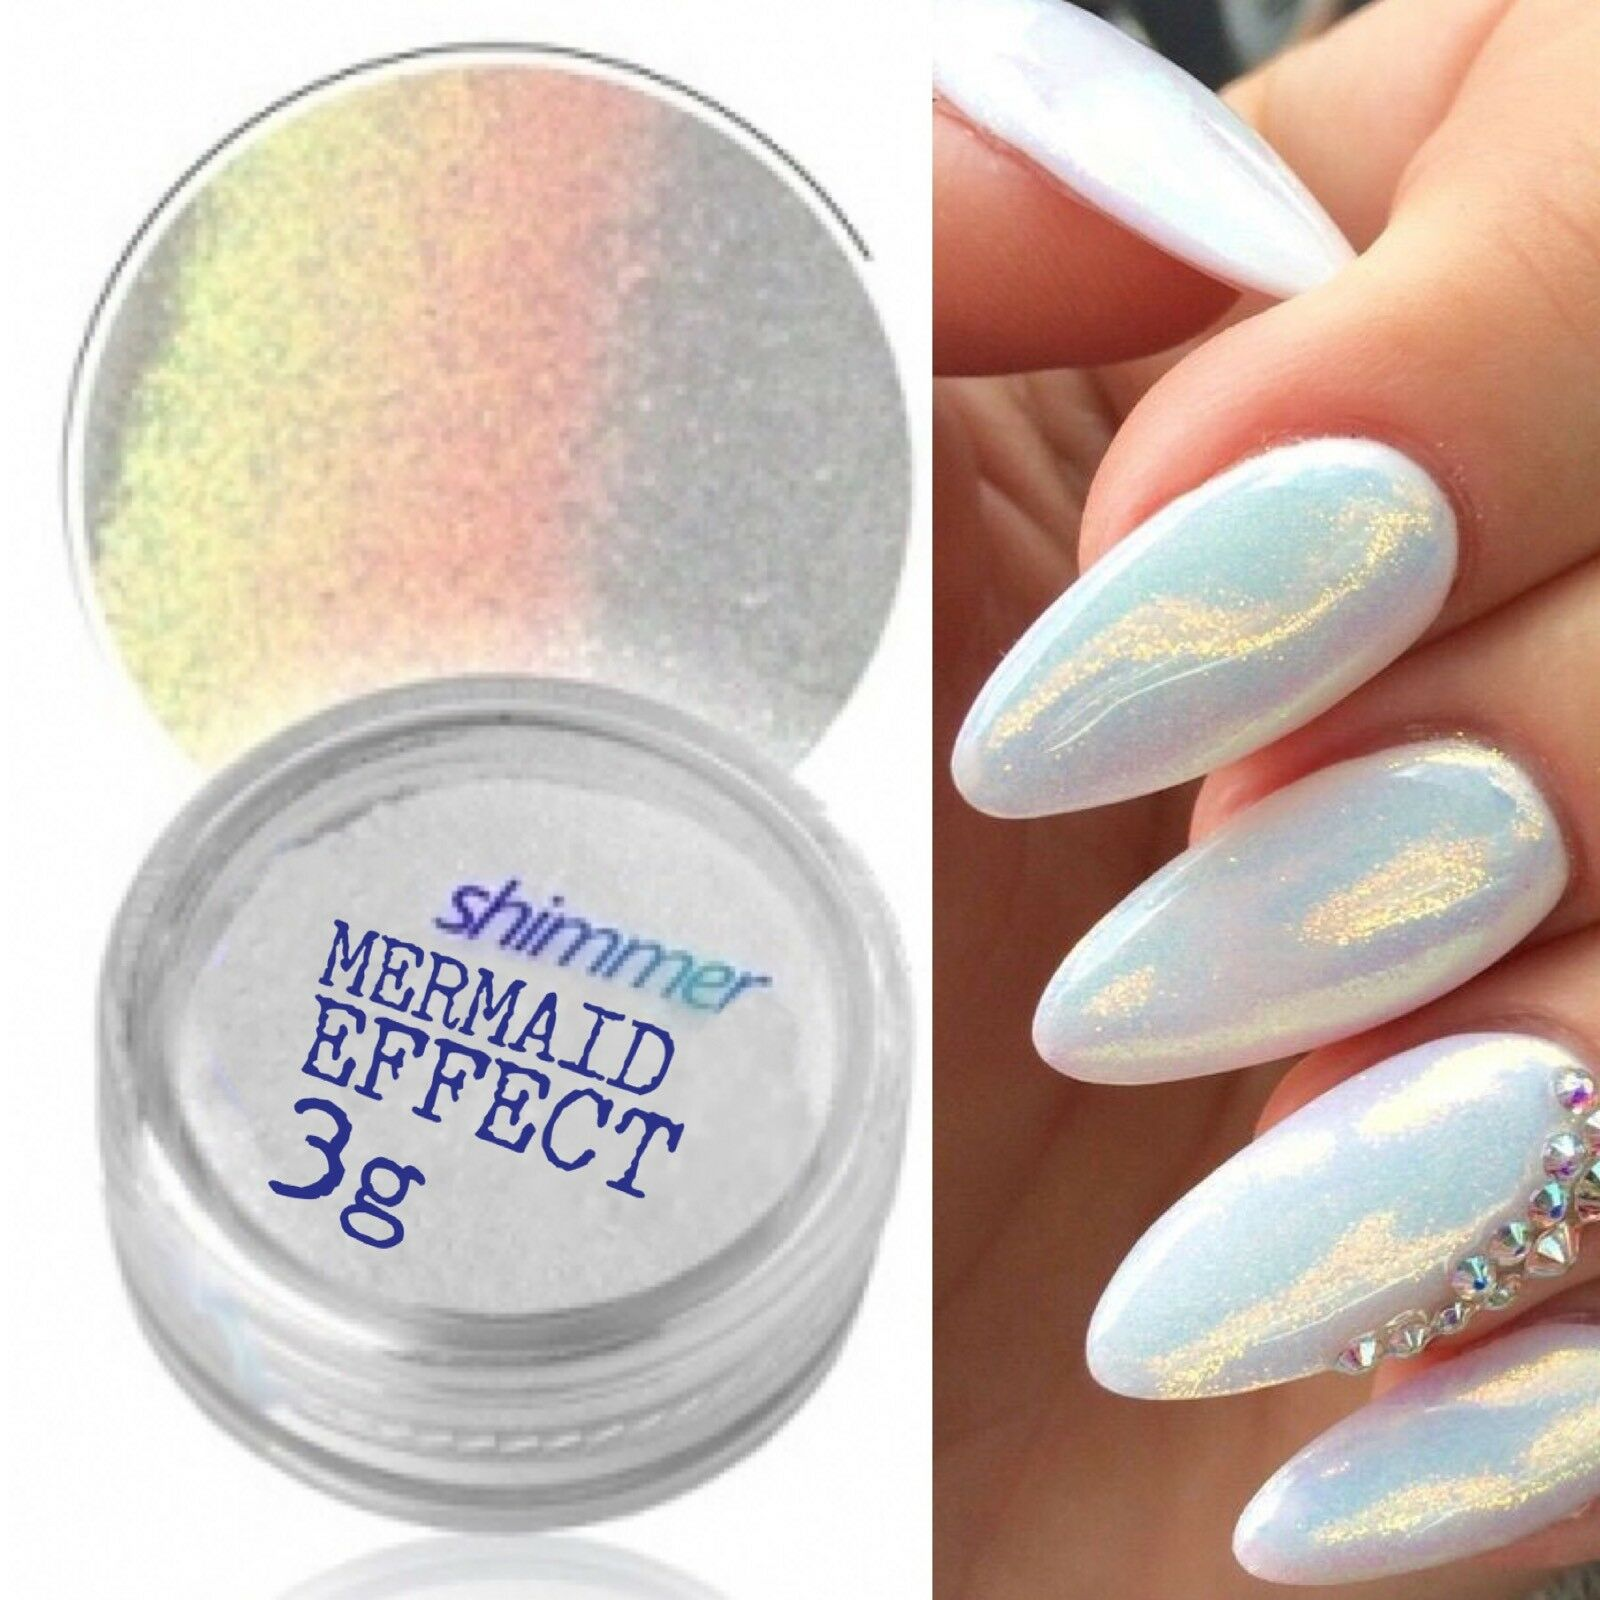 MERMAID EFFECT GLITTER NAIL ART POWDER DUST GLIMMER Hot Nails ...